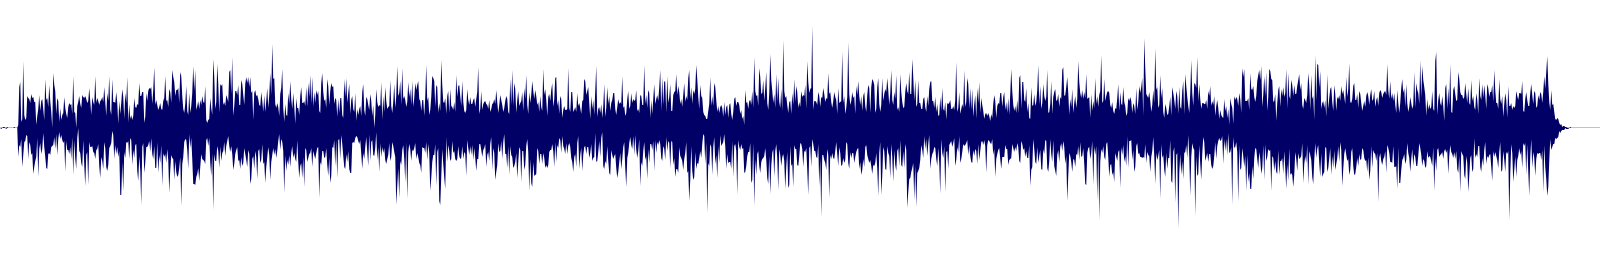 waveform of track #94459